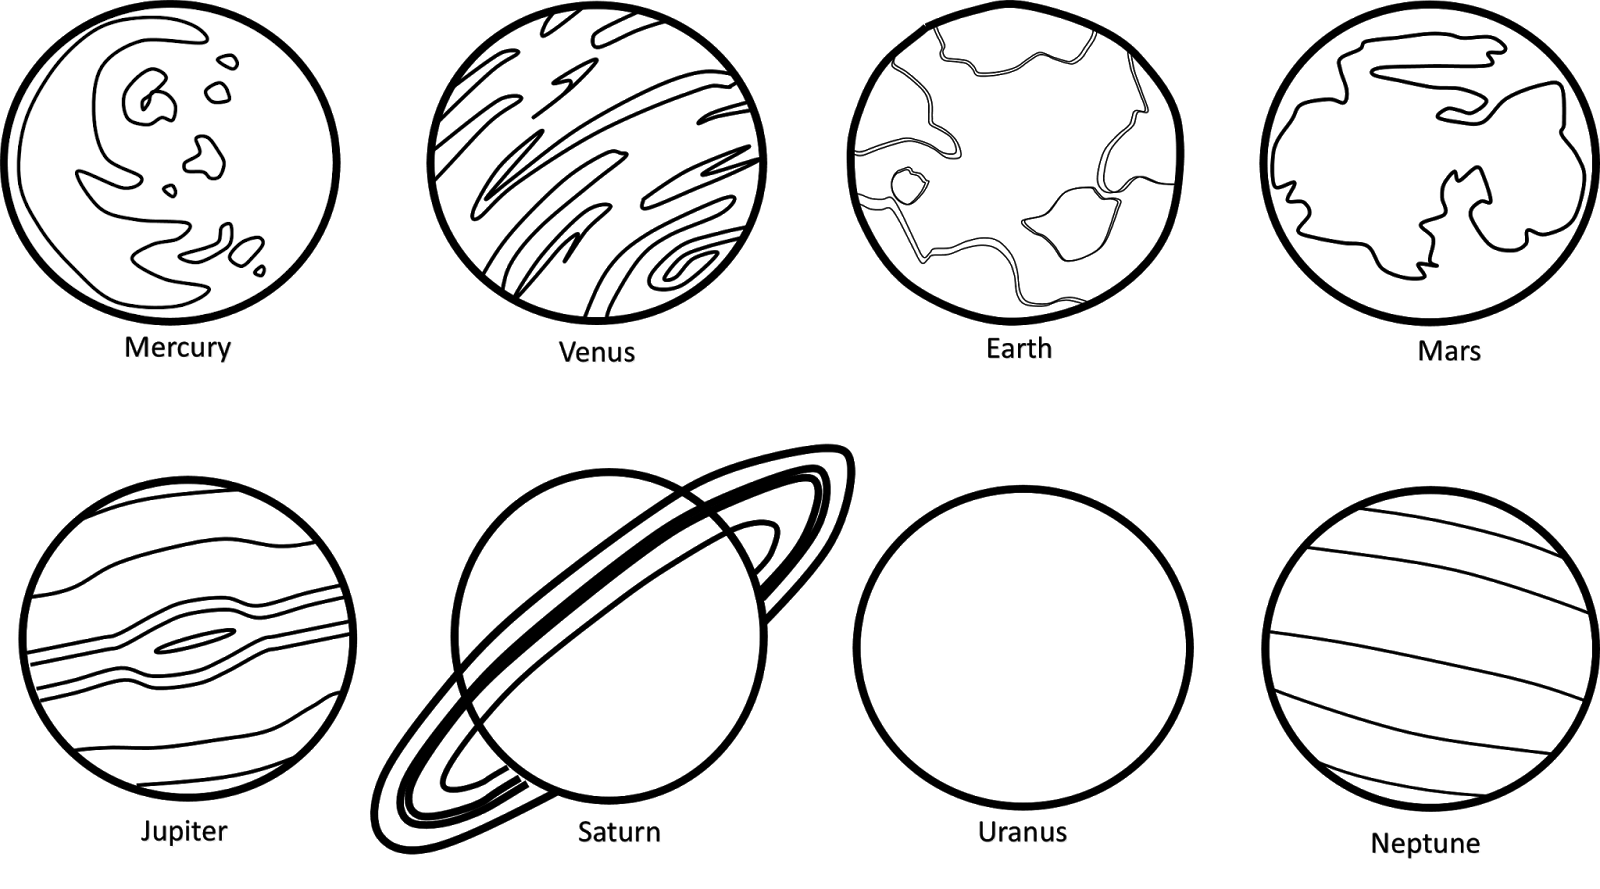 Planet black and white. Planets clipart cute